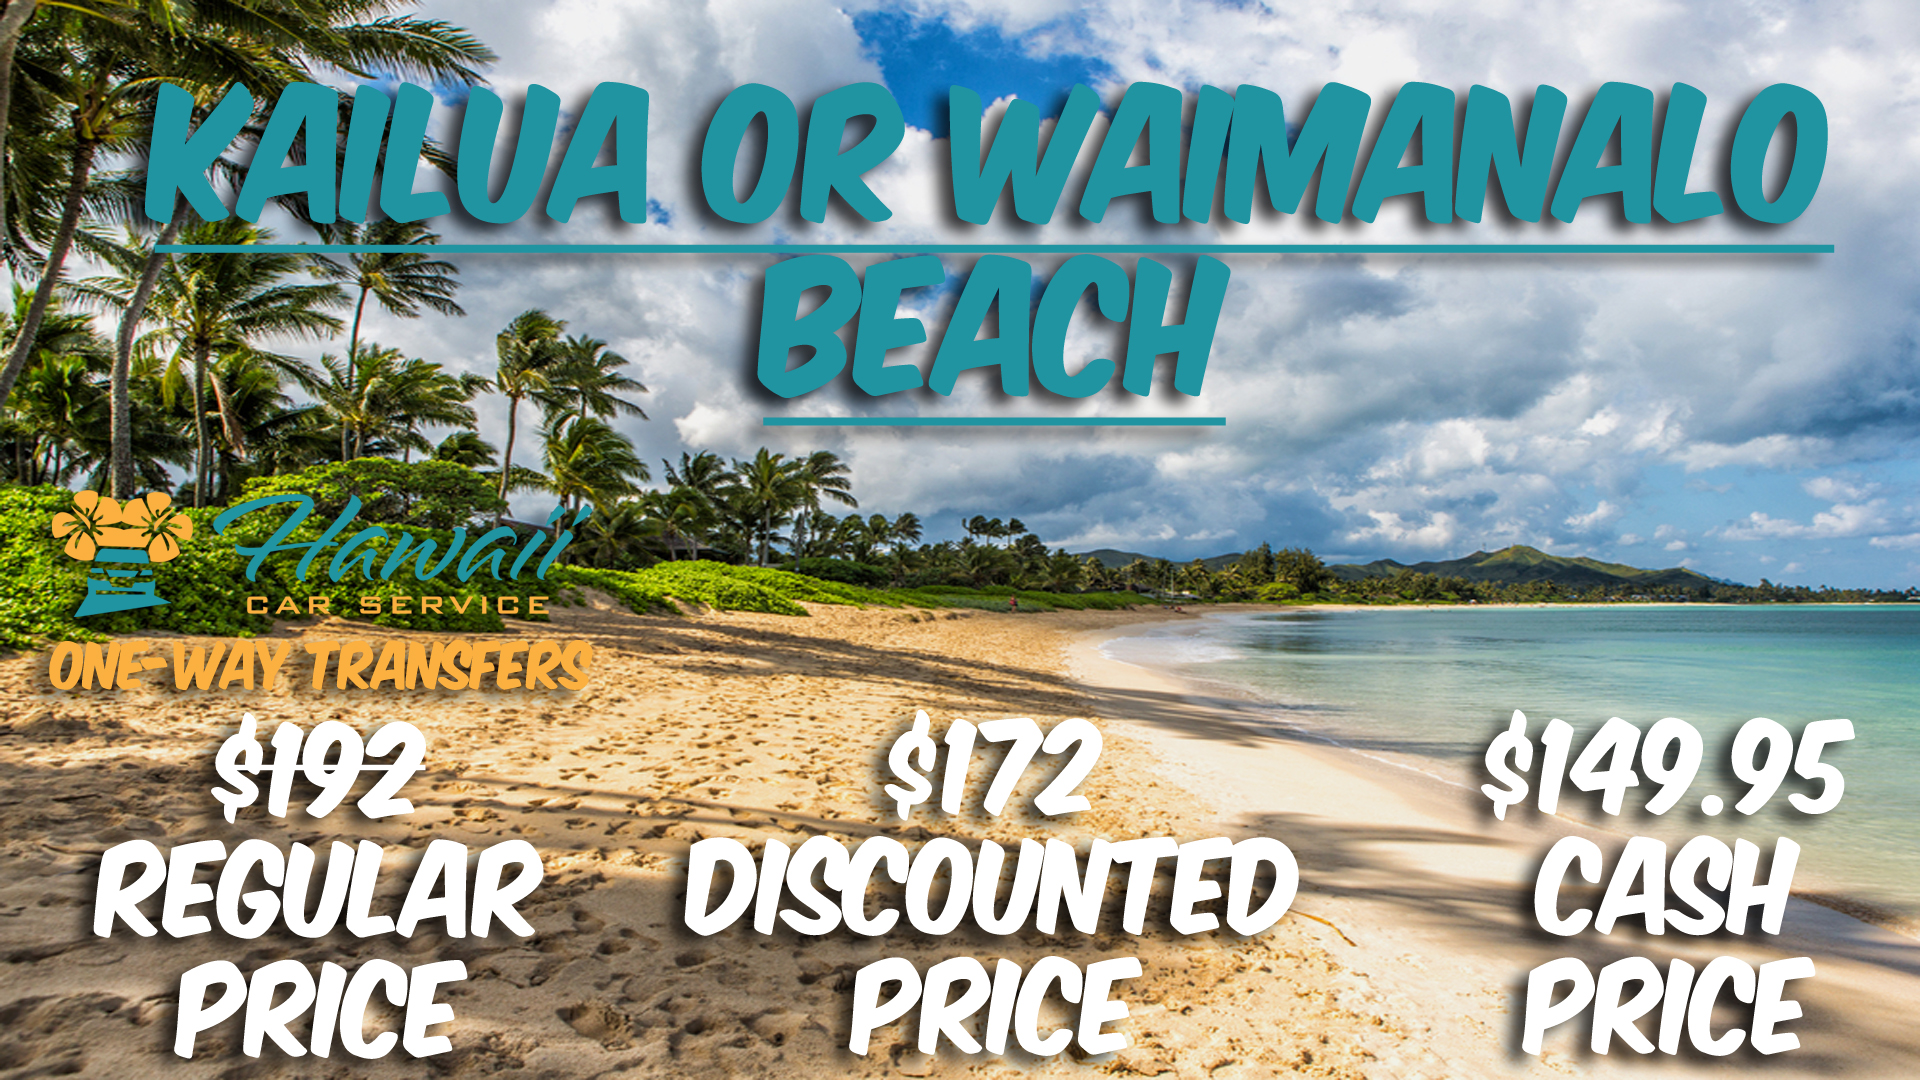 Kailua Or Waimanalo Transportation Service